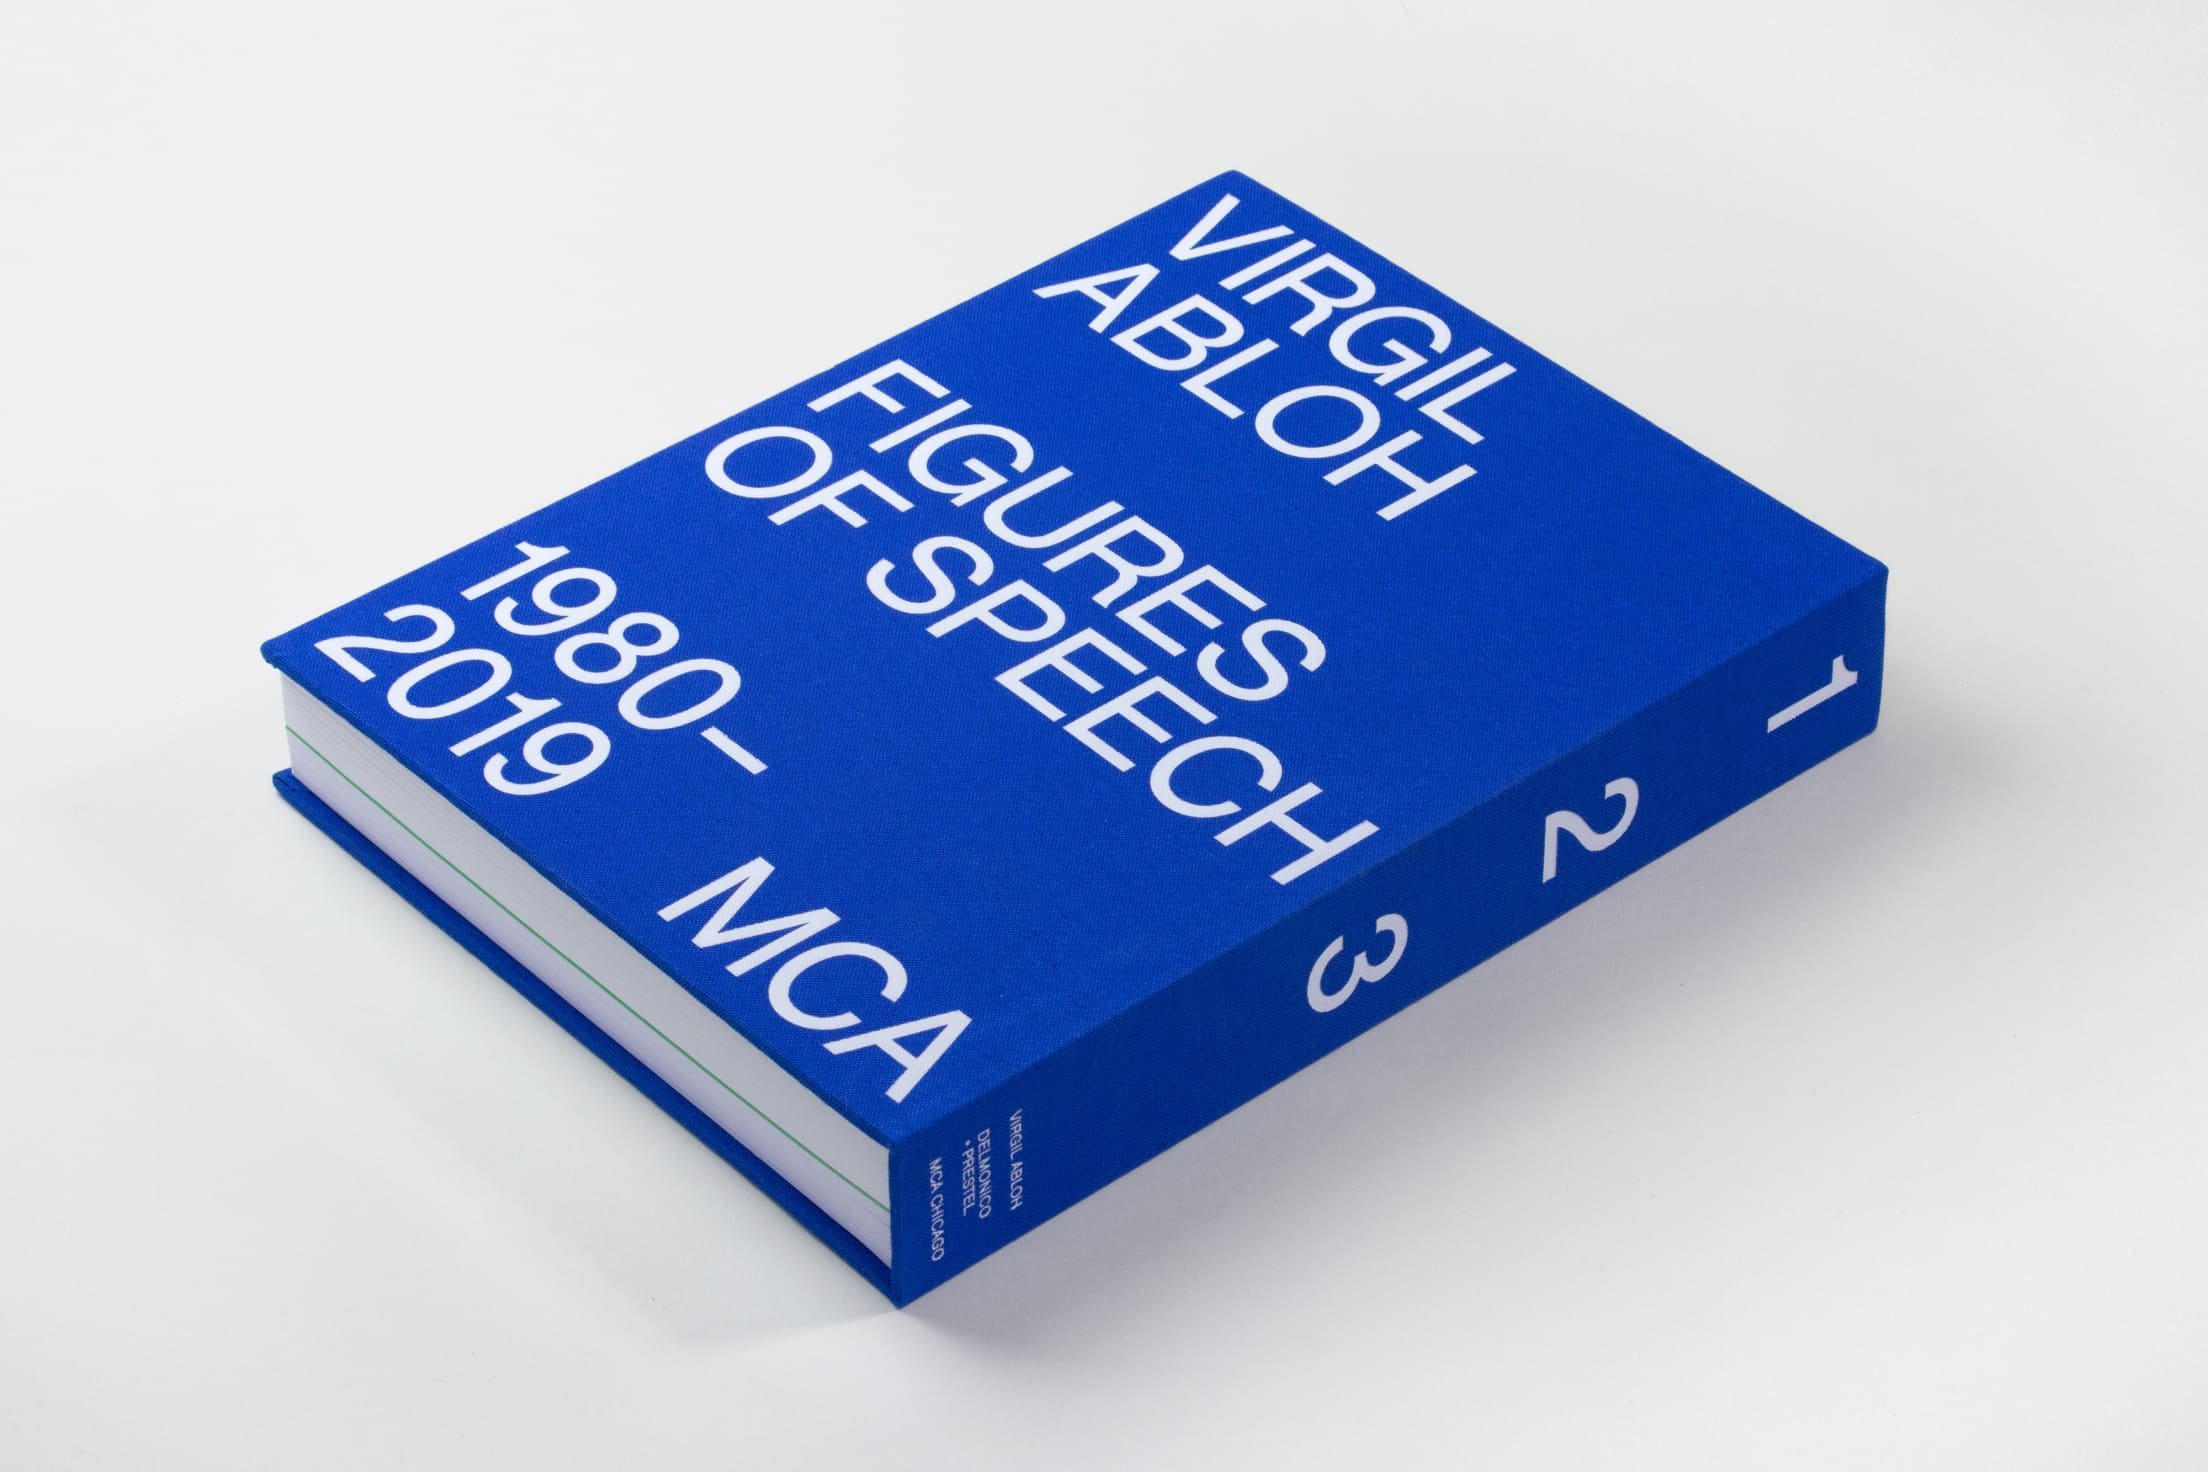 Virgil Abloh: Figures of Speech Wins AIGA's 50 Books Award